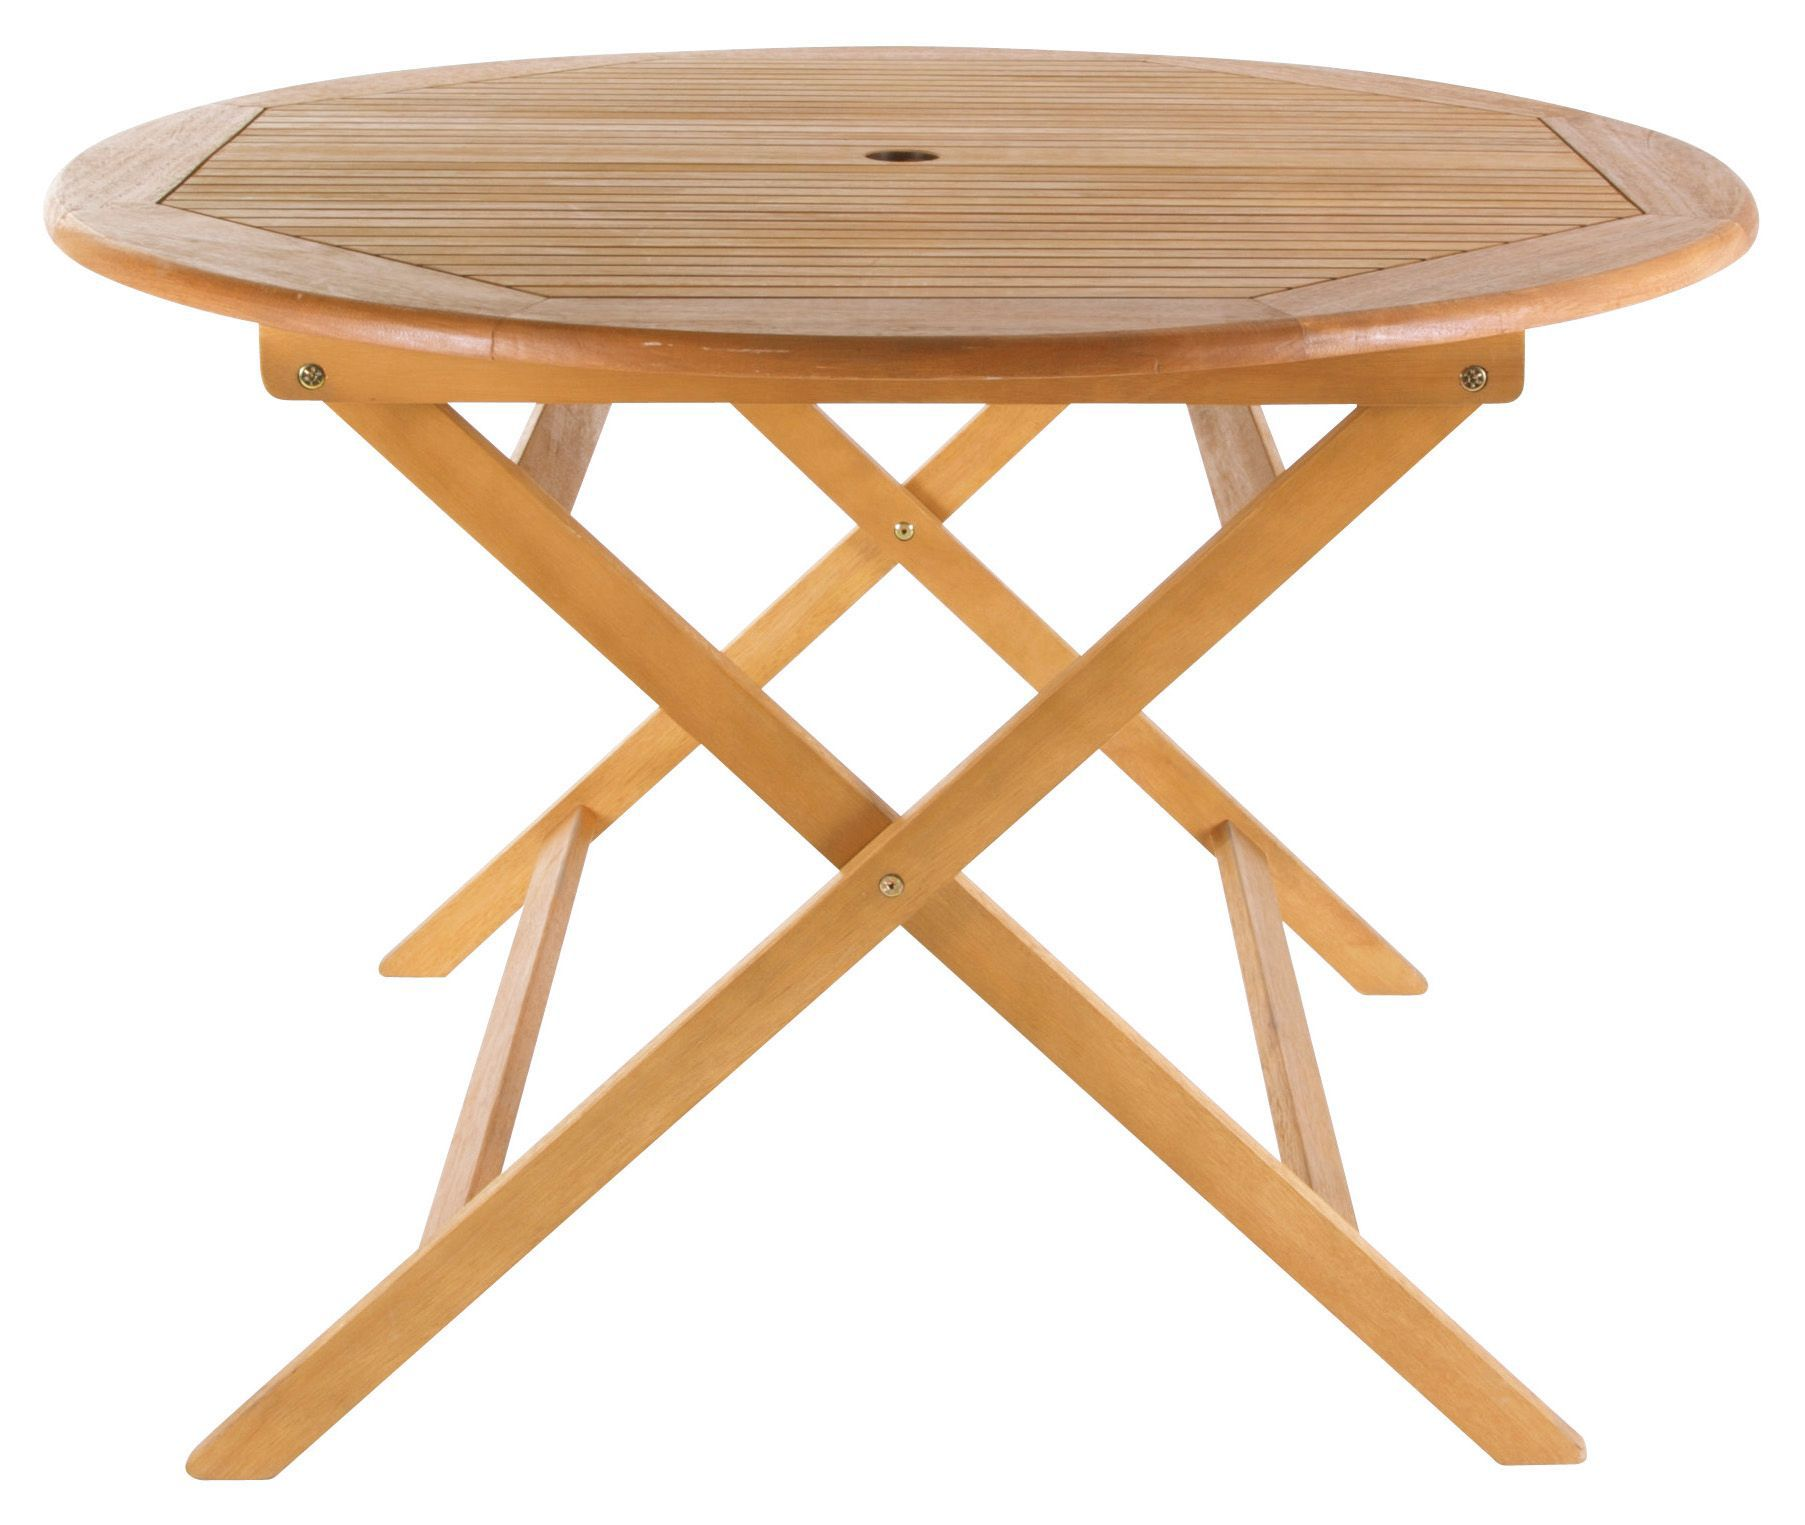 Aland Wooden 4 Seater Dining Table Departments Diy At B Q